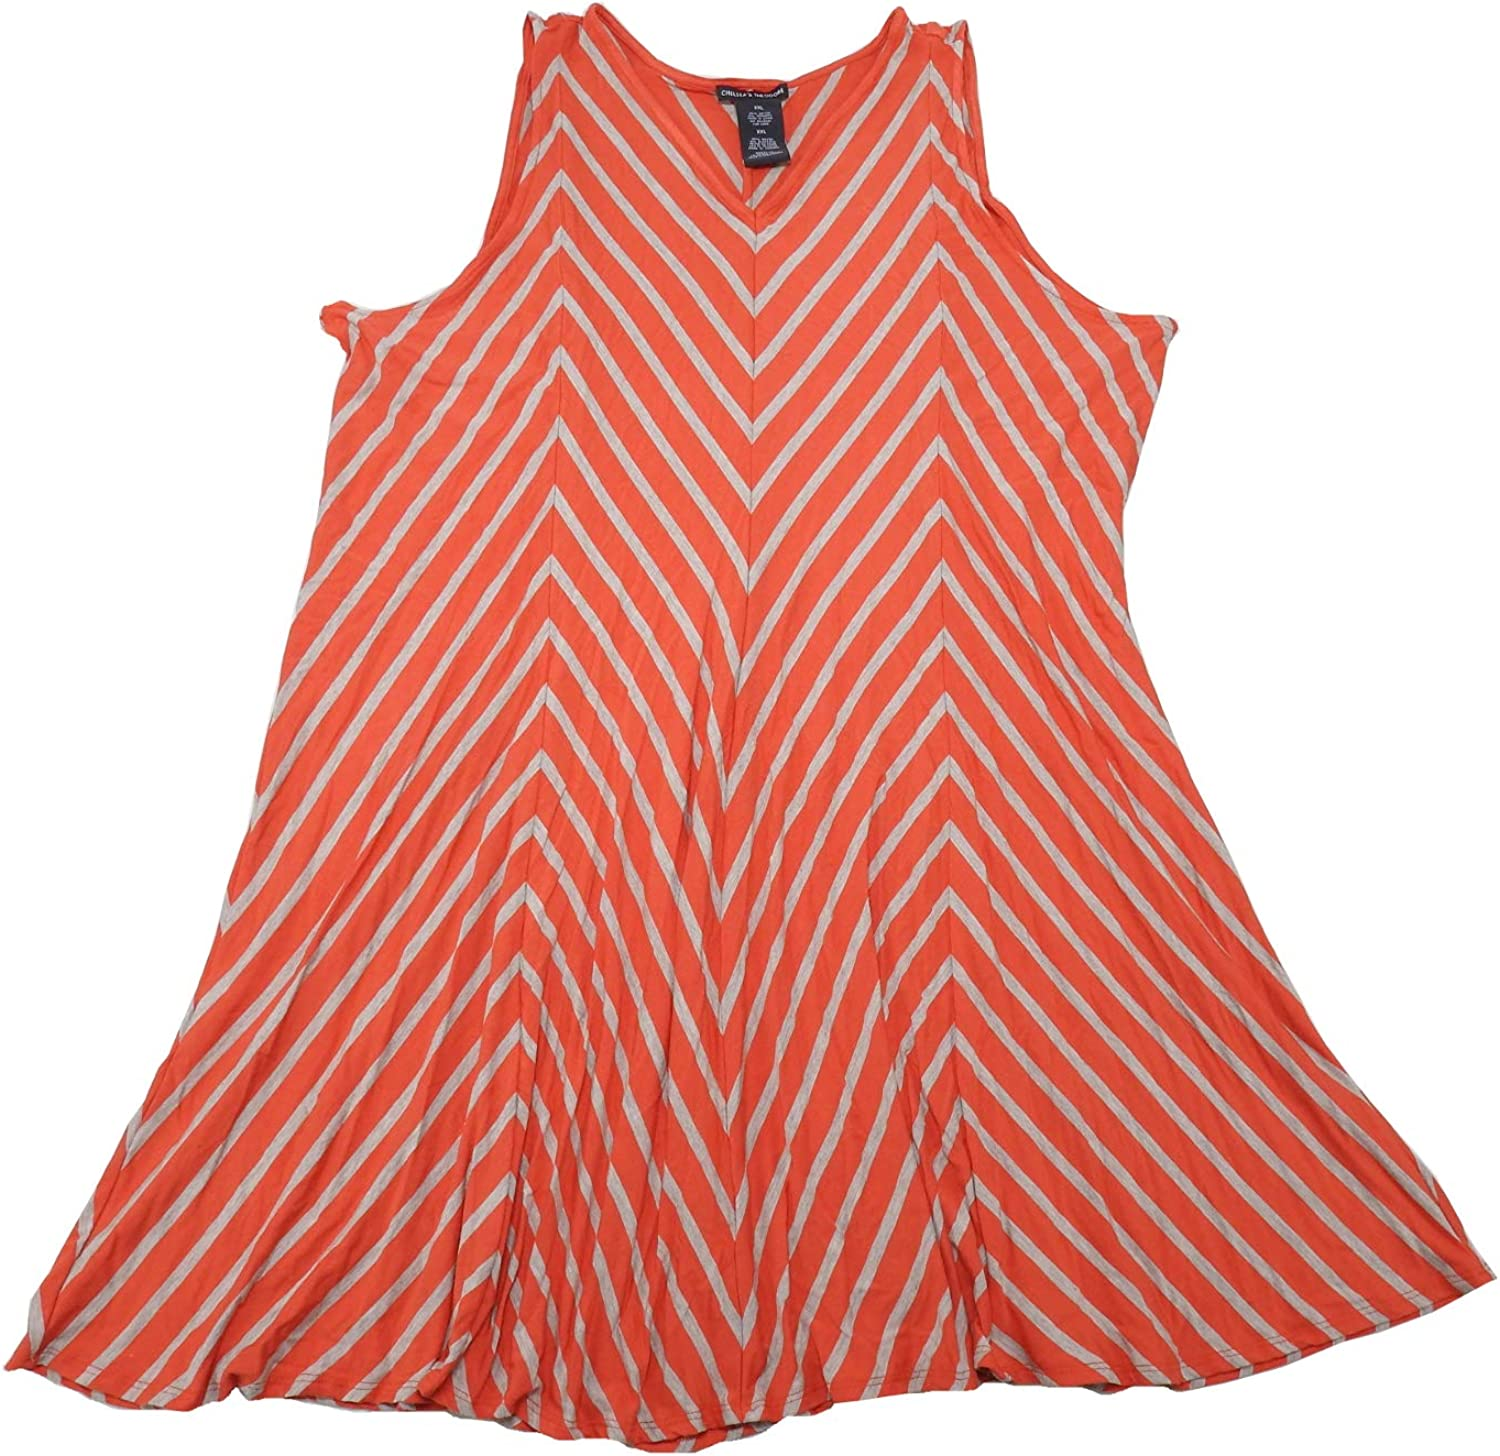 Chelsea & Theodore Womens Sleeveless VNeck Dresses, Striped